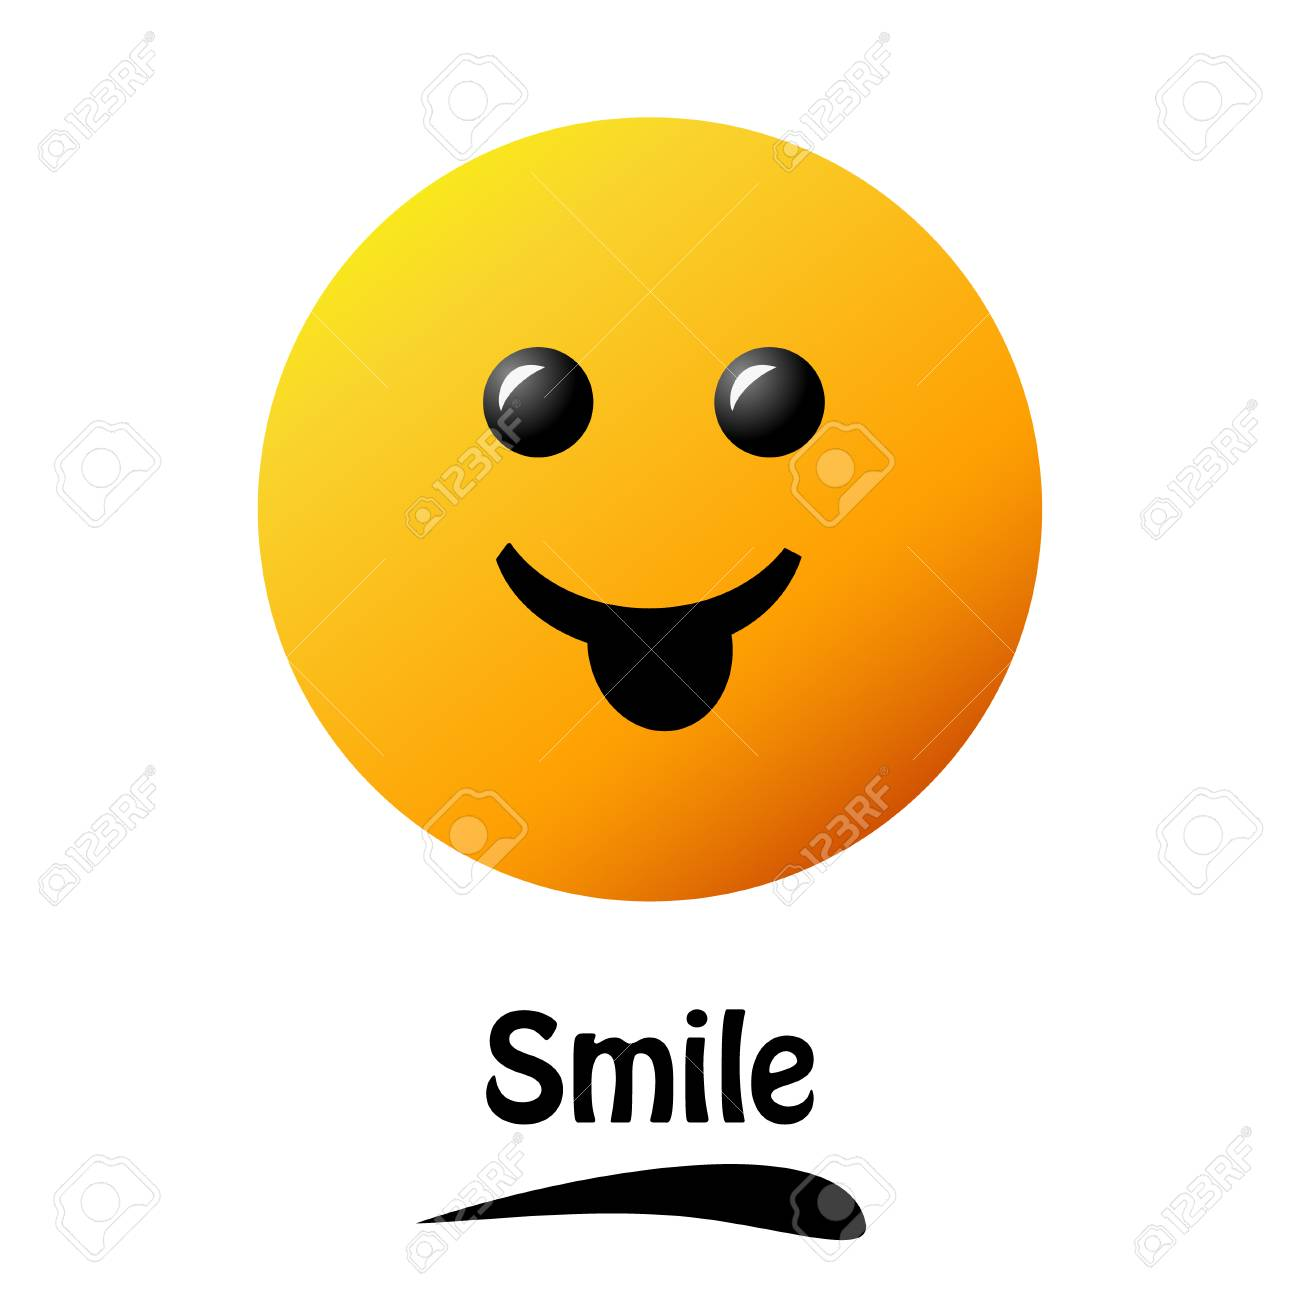 Smiley face poster world smile day smiley wallpaper emoticon smiley face poster world smile day smiley wallpaper emoticon background emoticon icon altavistaventures Image collections